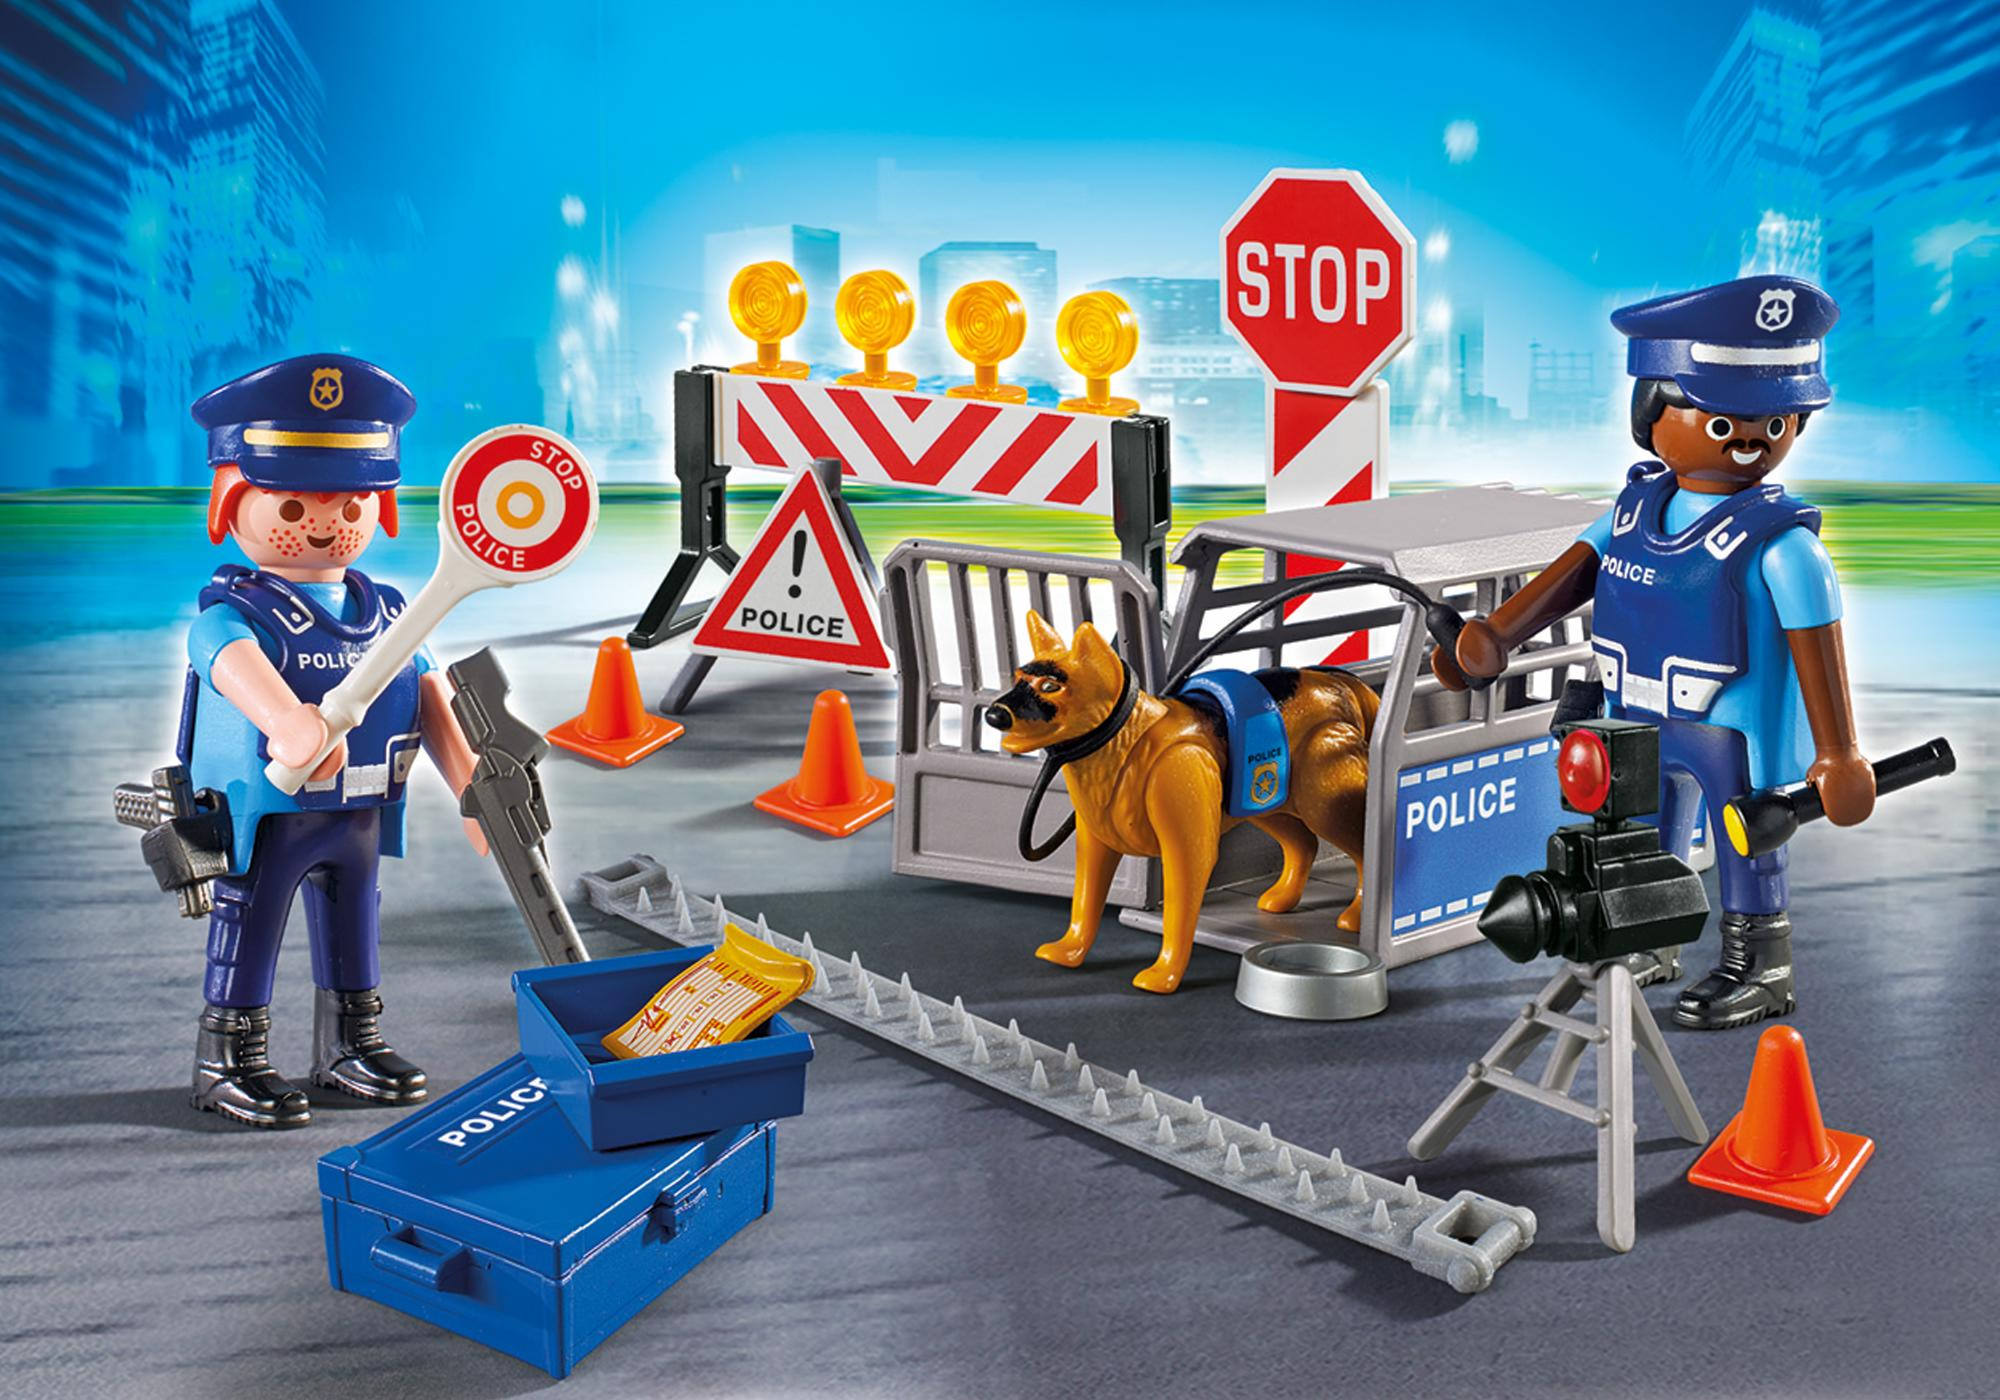 http://media.playmobil.com/i/playmobil/6924_product_detail